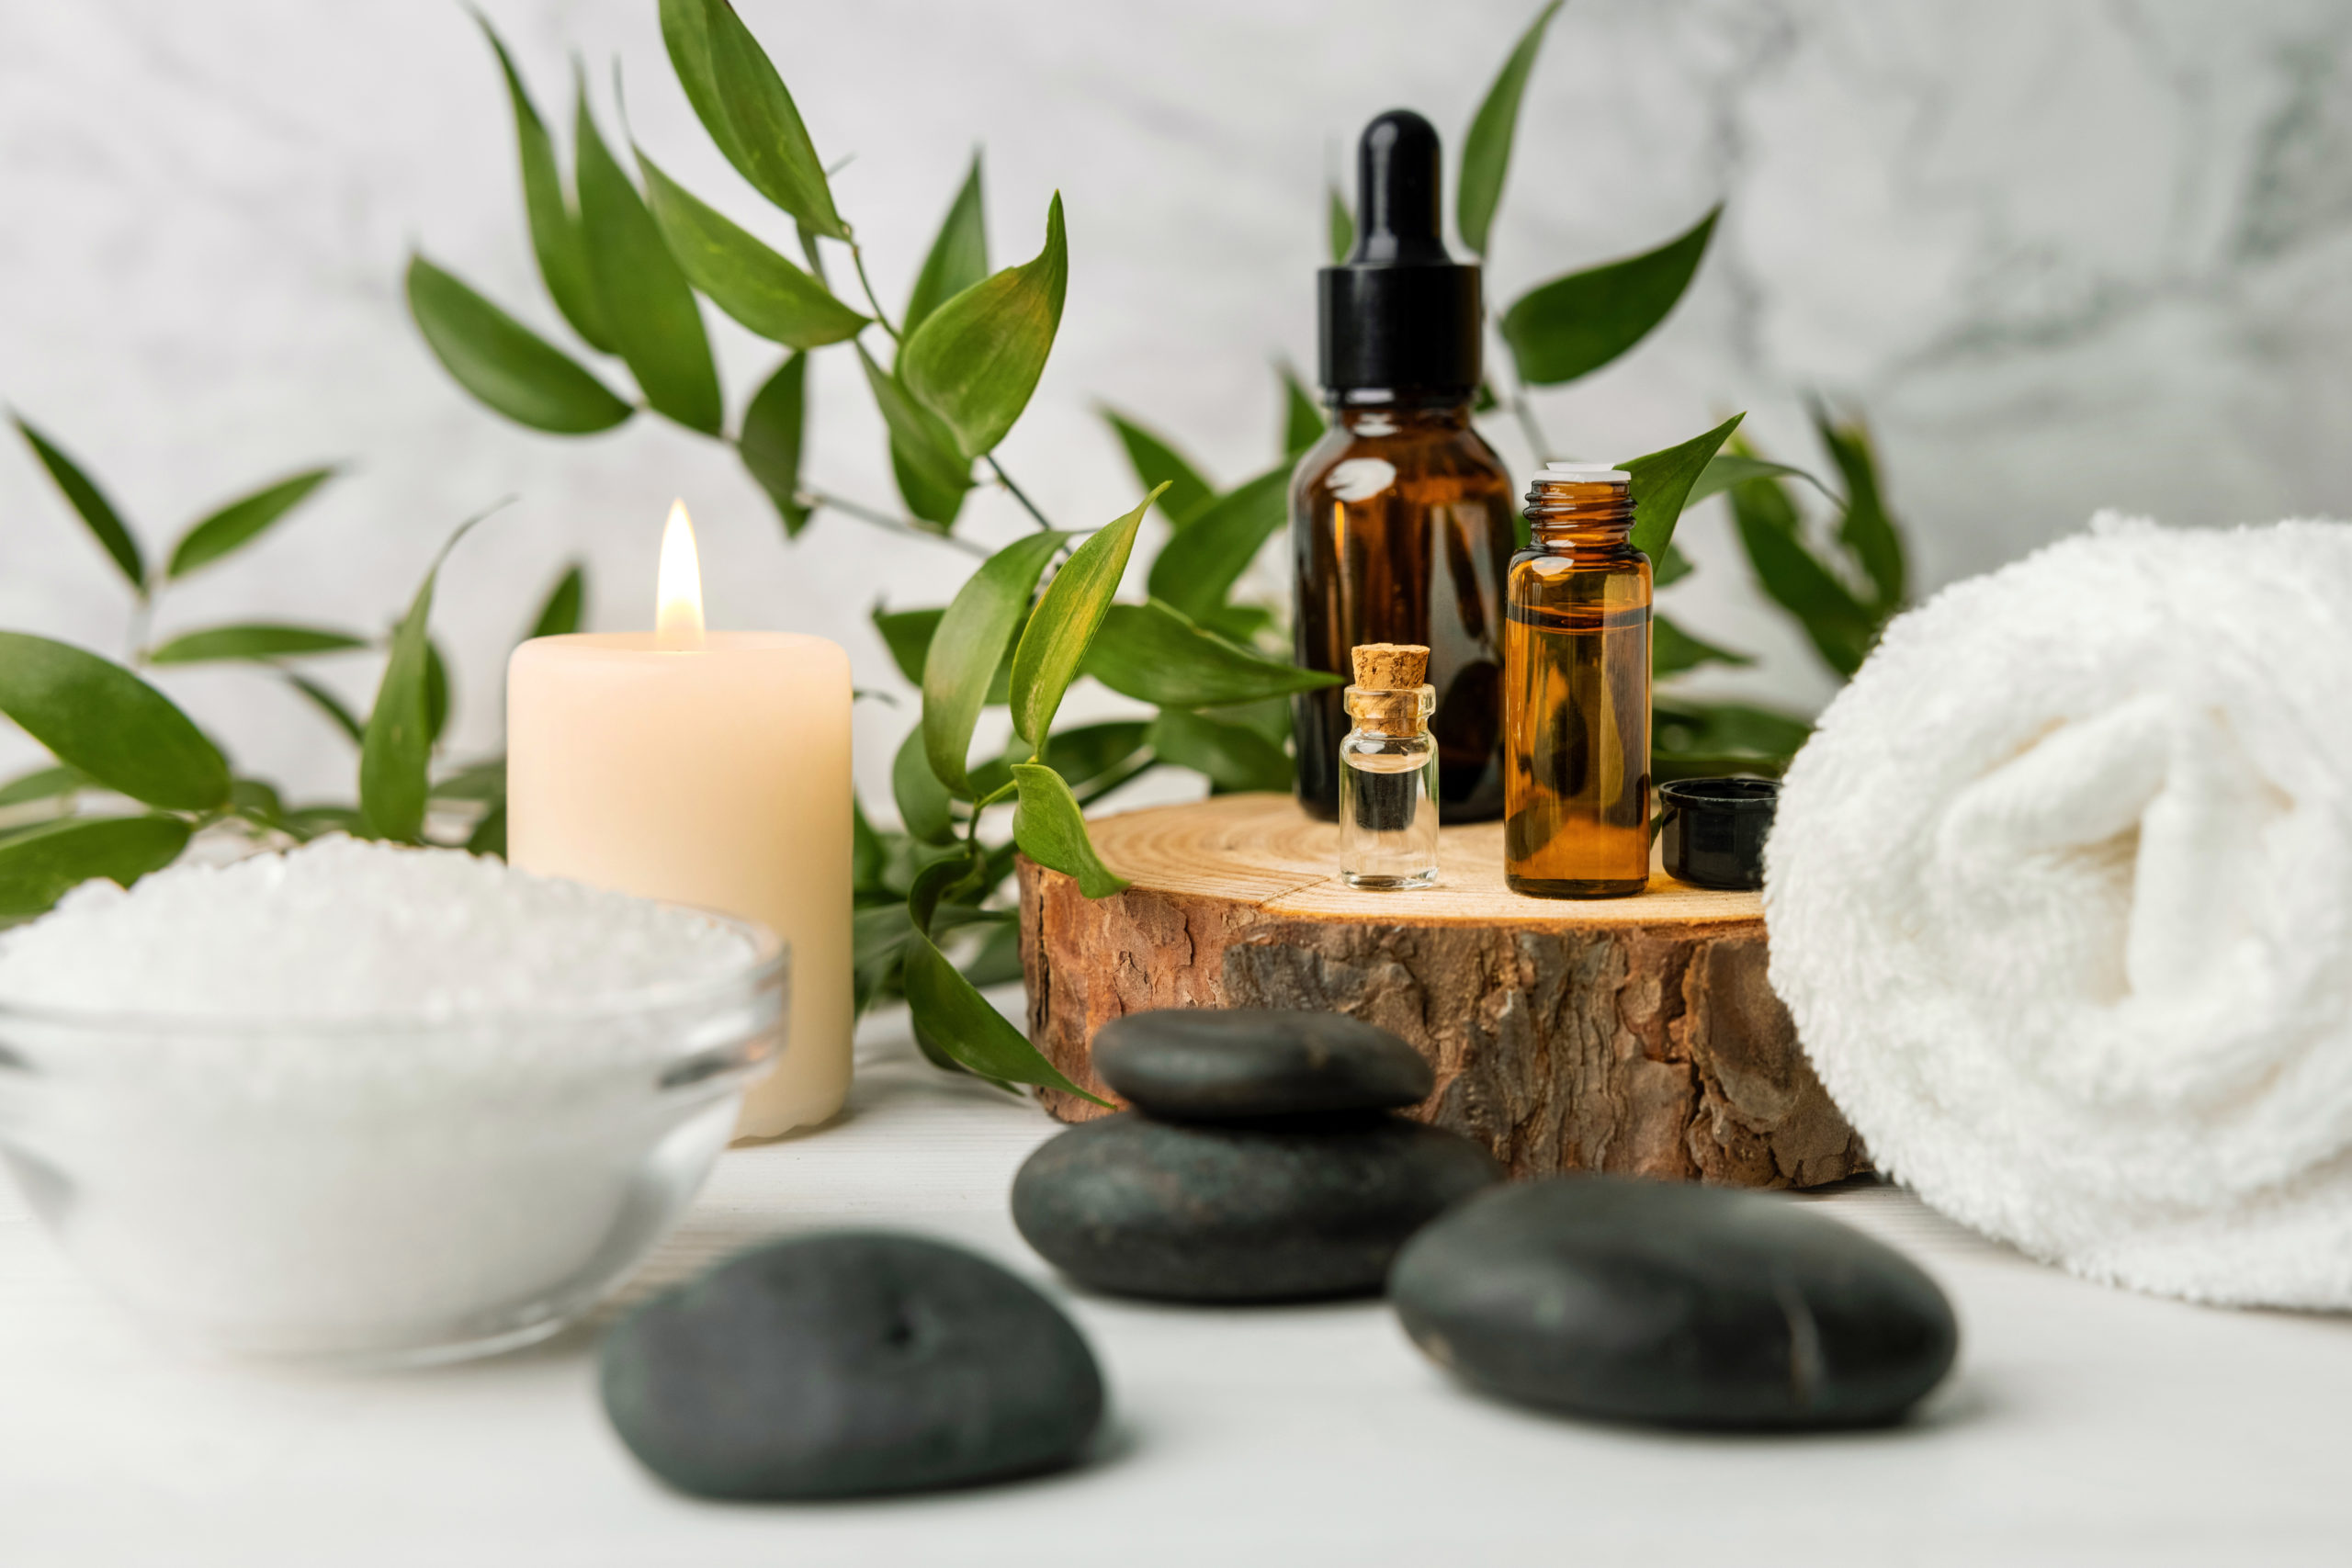 treatment essential items from spas near Kingstowne